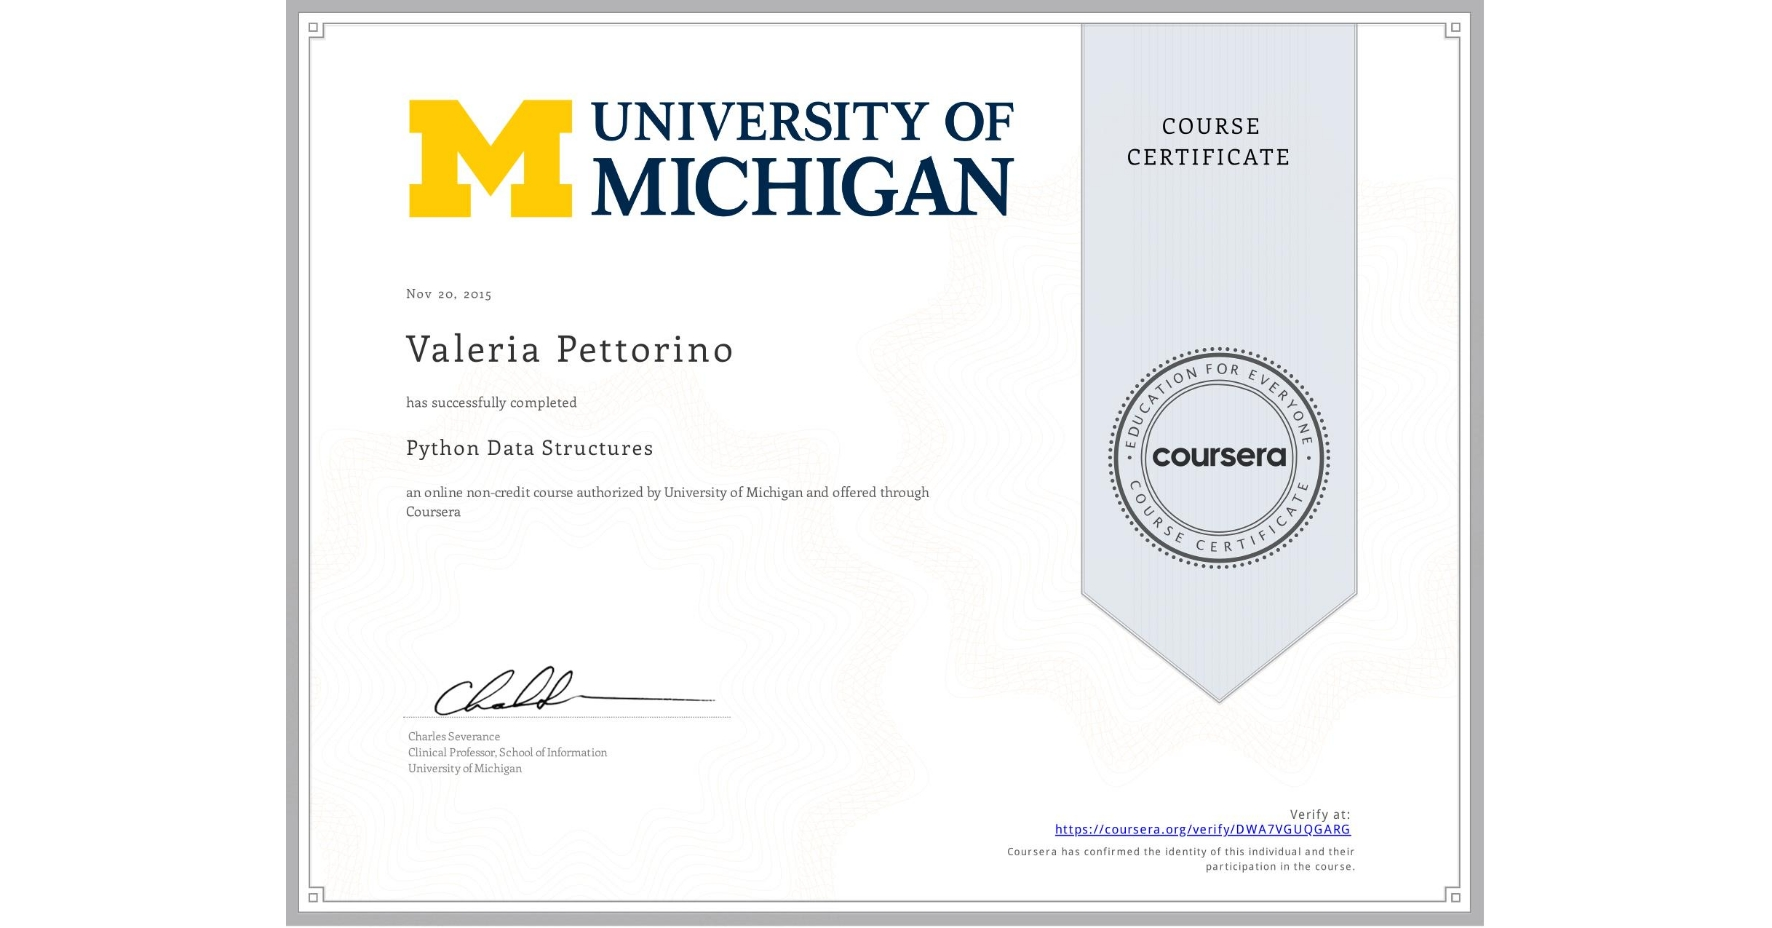 View certificate for Valeria Pettorino, Python Data Structures, an online non-credit course authorized by University of Michigan and offered through Coursera